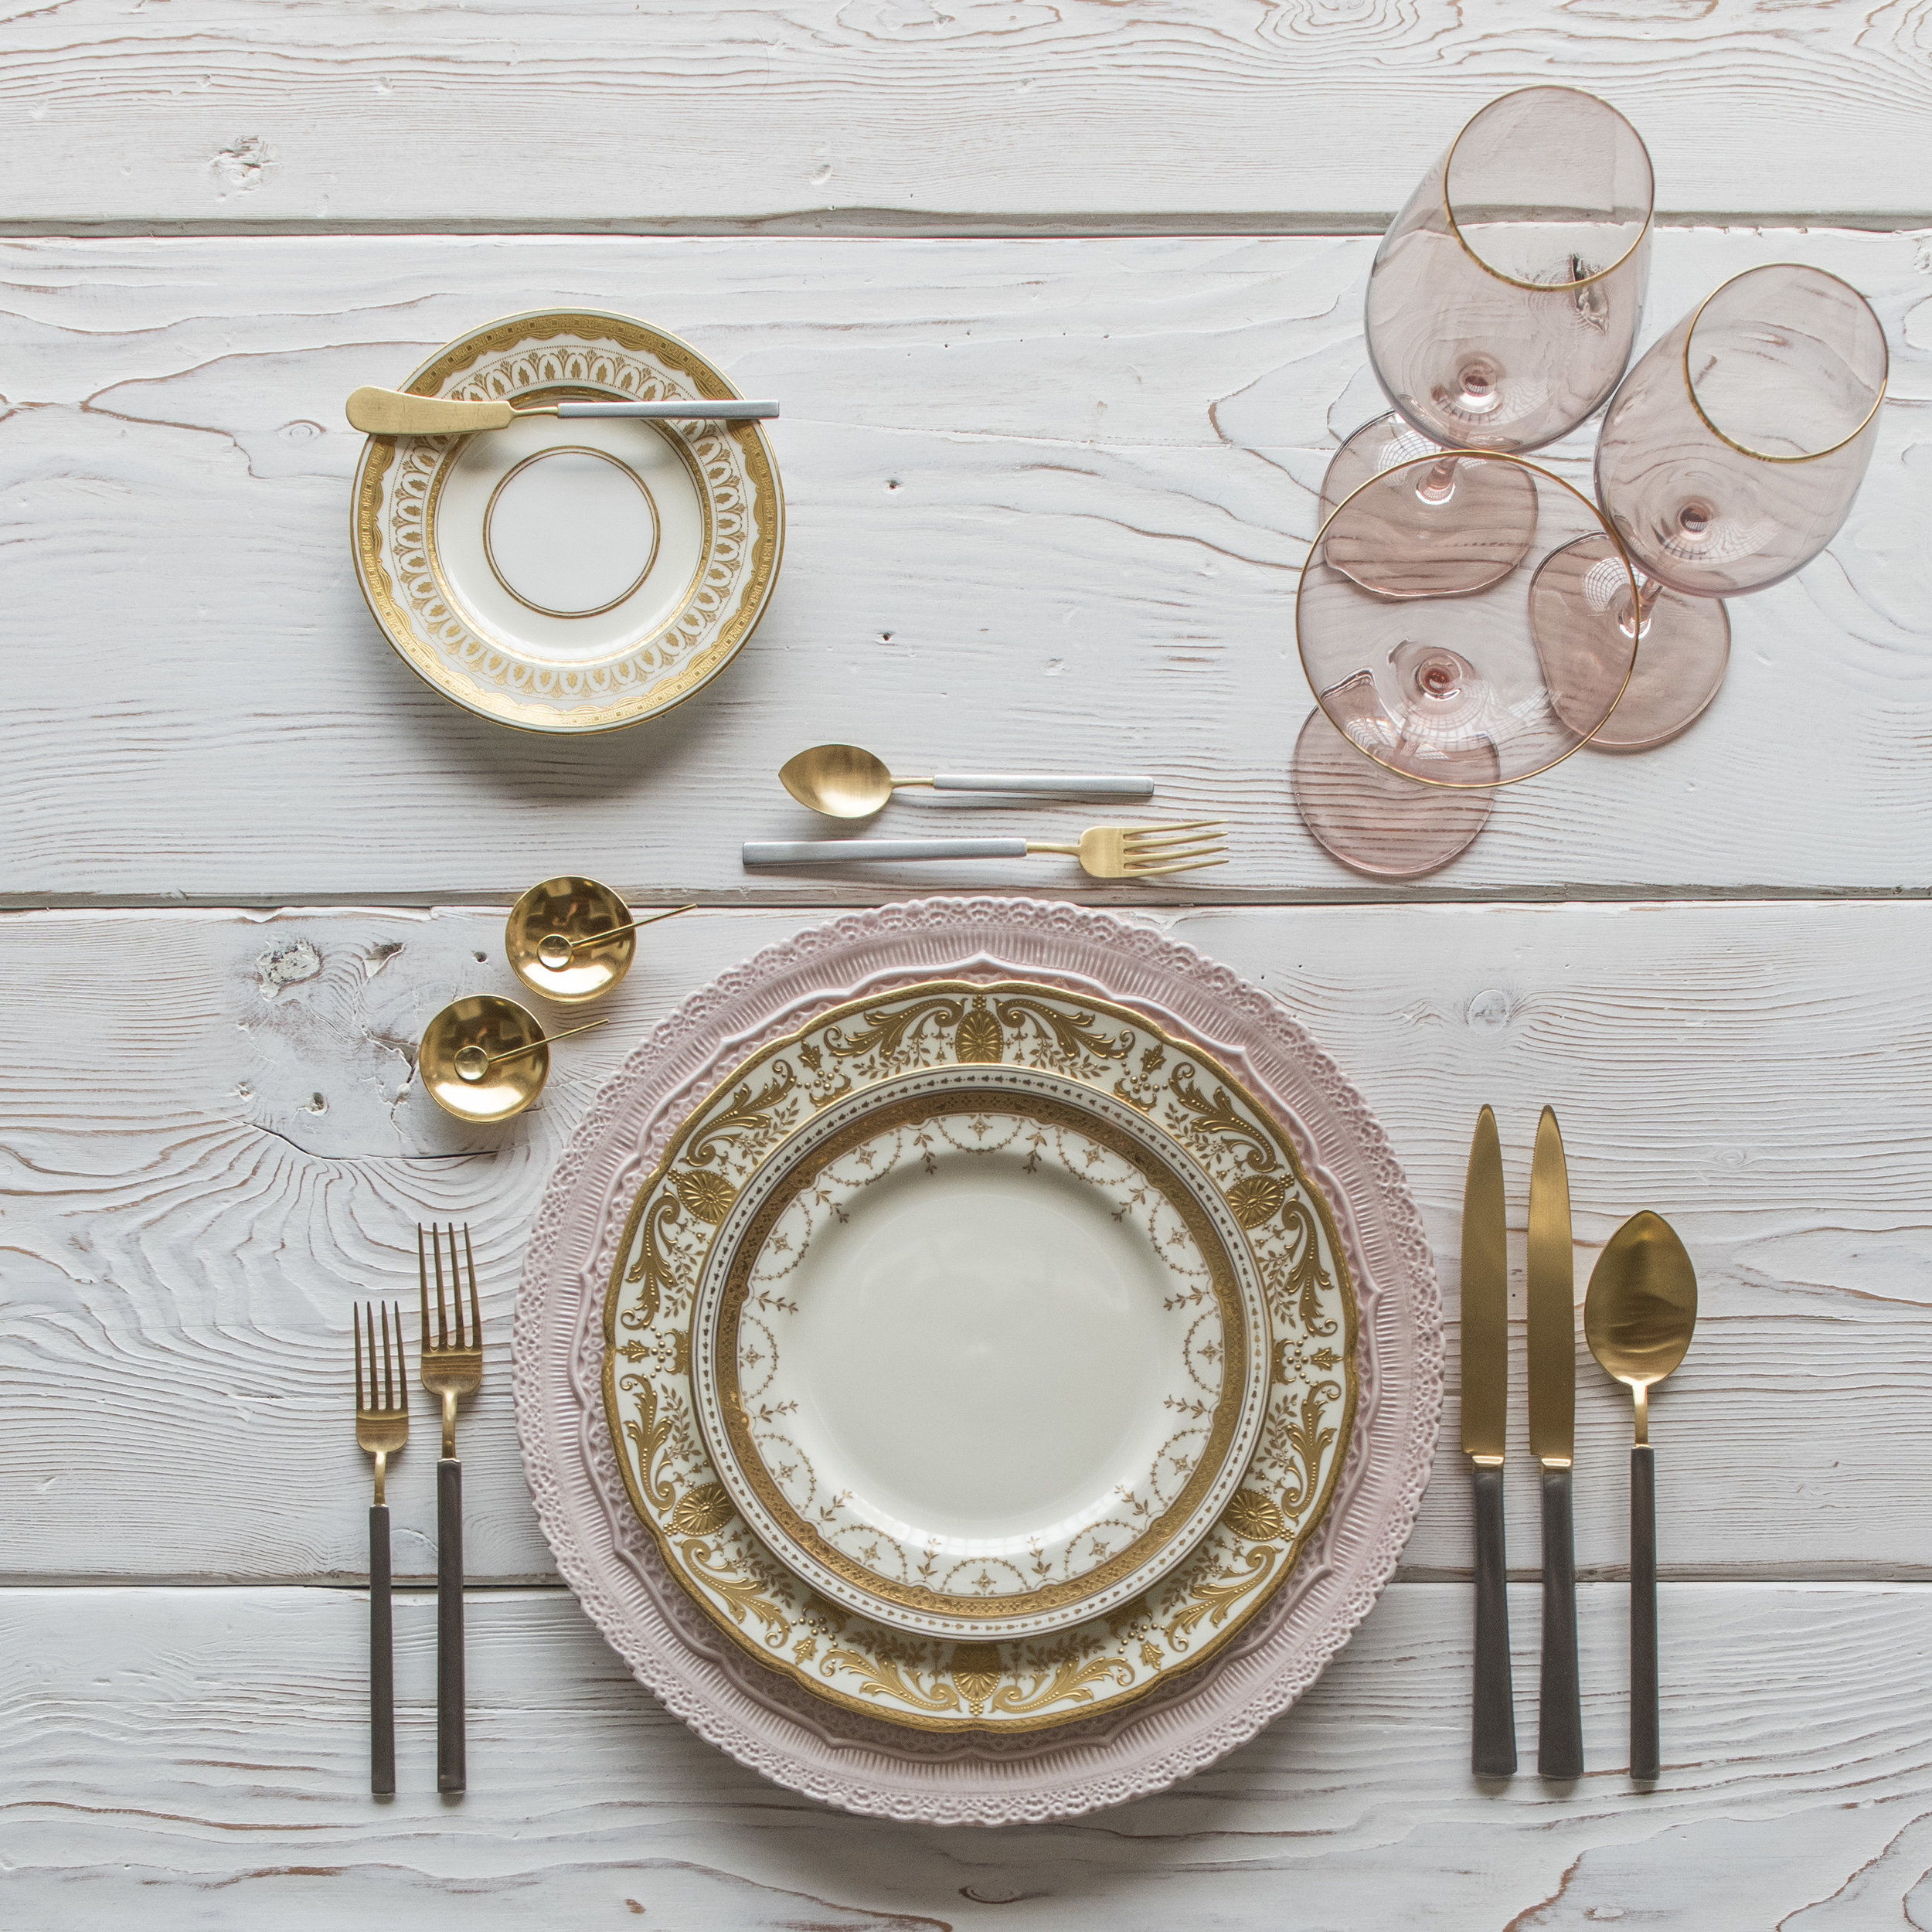 RENT: Lace Chargers in Blush + Crown Gold Collection Vintage China + Axel Flatware in Matte 24k Gold/Silver + Bella 24k Gold Rimmed Stemware in Blush + 14k Gold Salt Cellars + Tiny Gold Spoons  SHOP:Bella 24k Gold Rimmed Stemware in Blush + 14k Gold Salt Cellars + Tiny Gold Spoons